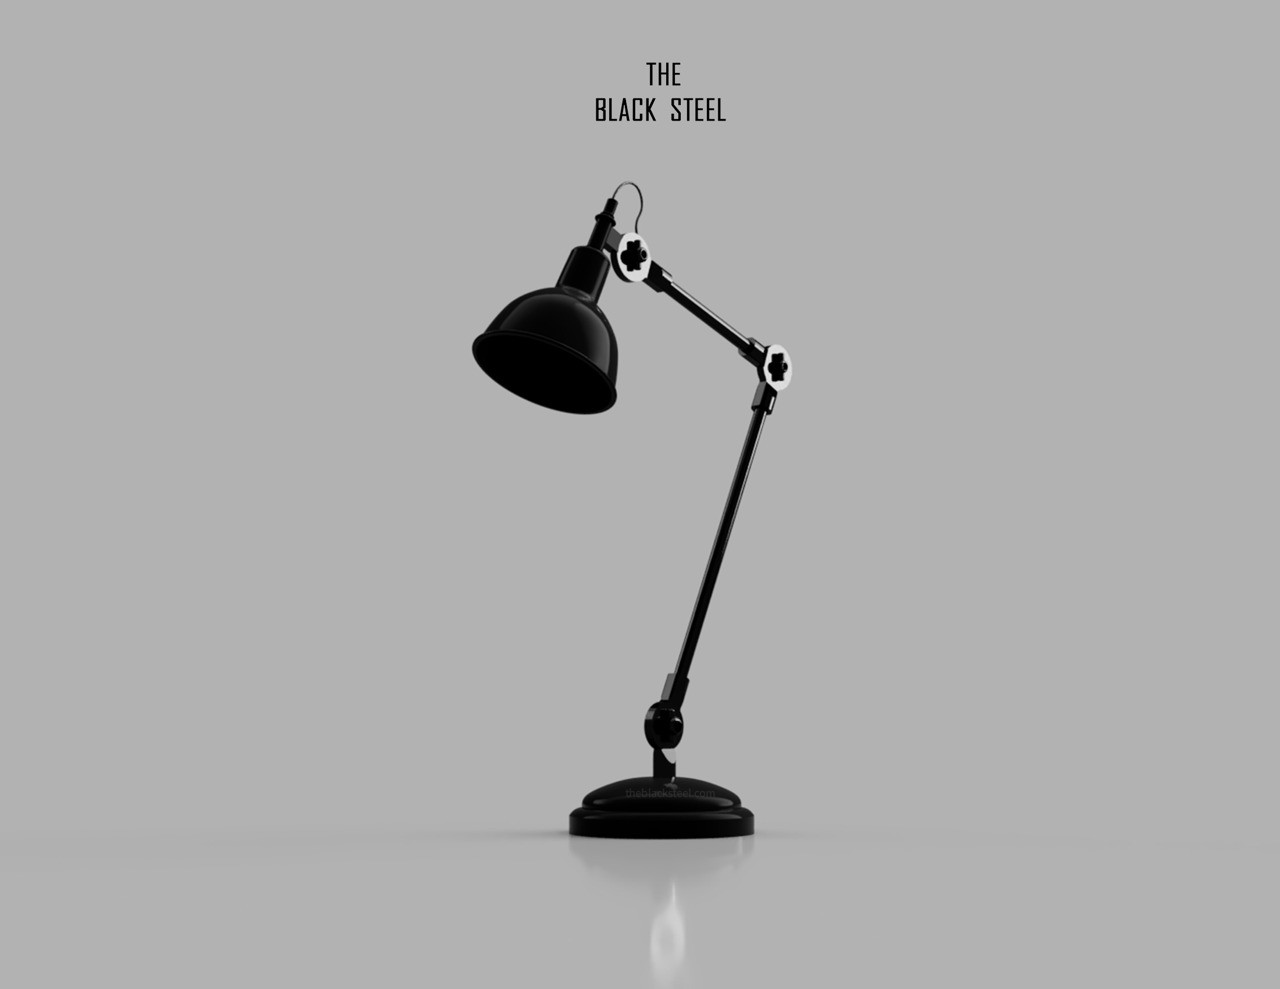 Swing-Arm coal black table lamp is an amalgamation of traditional aesthetics, industrial functionality, and a modern design # Shop it on www.theblacksteel.com Ships worldwide 🌍 #interiors #architecturephotography #photography #architectruelovers #interiorinspo #lamps #bangalore #delhi #mumbai #interiorstyling #interior123 #interior4all #interiordesign #interiorlovers #interiordecorating #homedesign #scandinavianhome #whiteinterior #home #architecture #designhome #homeinterior #interiordesignideas #homeideas #lamp #interiordetails #interiordesigner #interiordecorator #blogging #theblacksteel